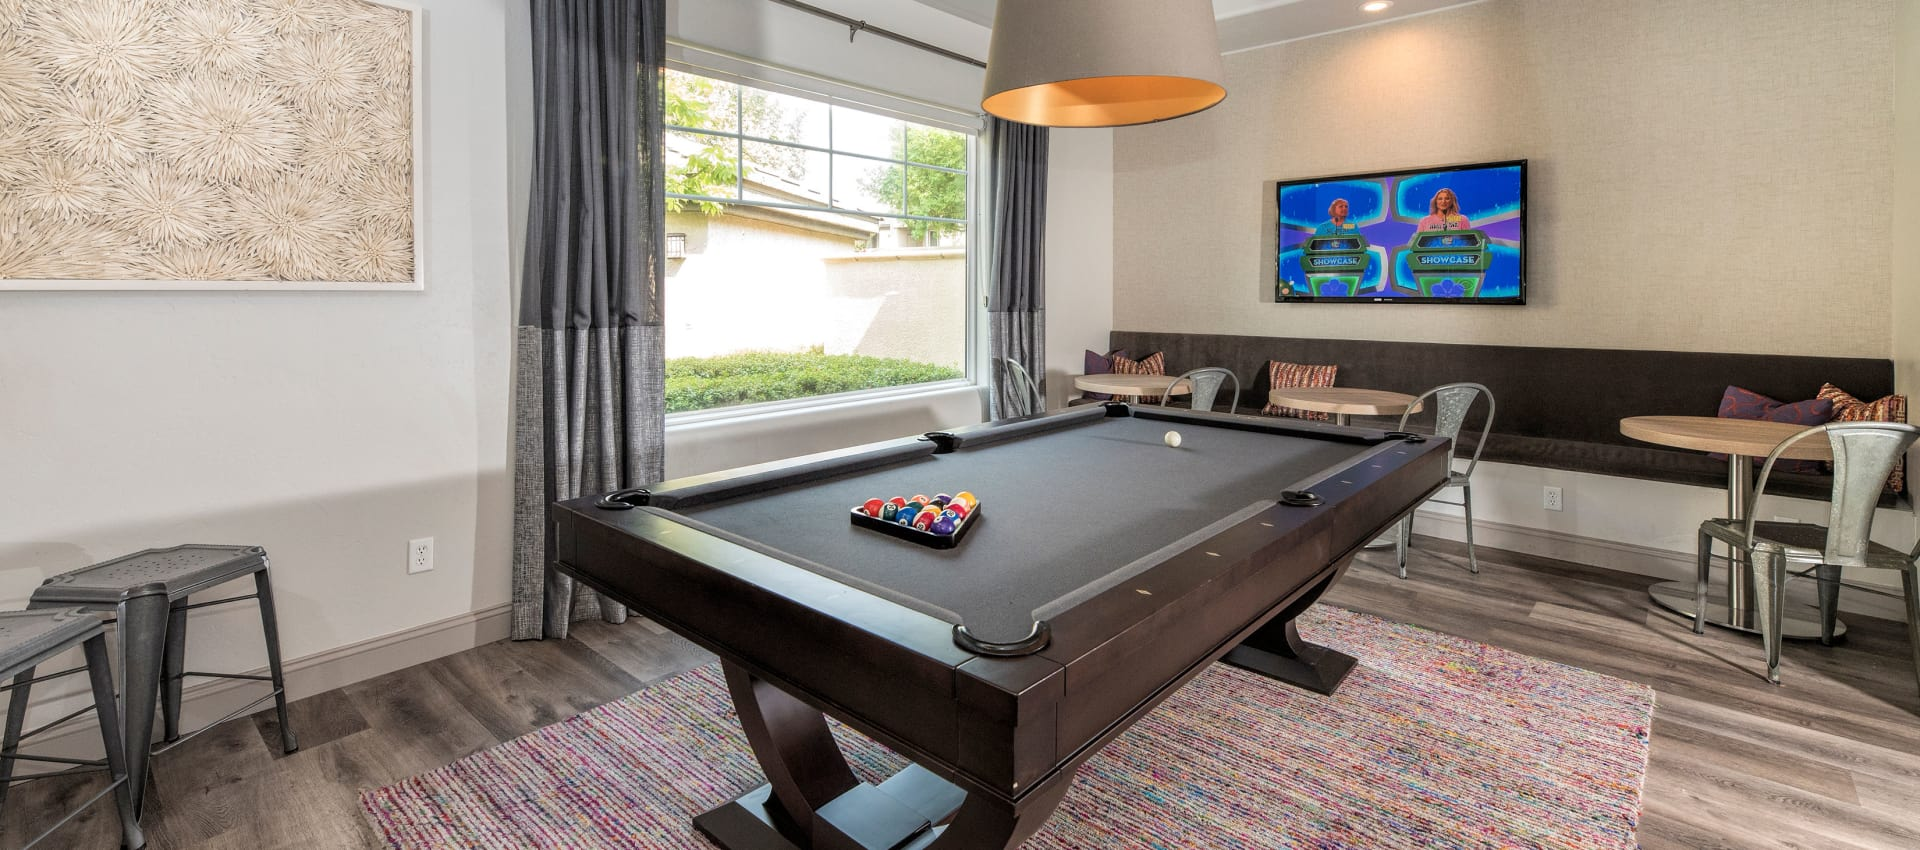 The Artisan Apartment Homes offers a pool table room in Sacramento, California